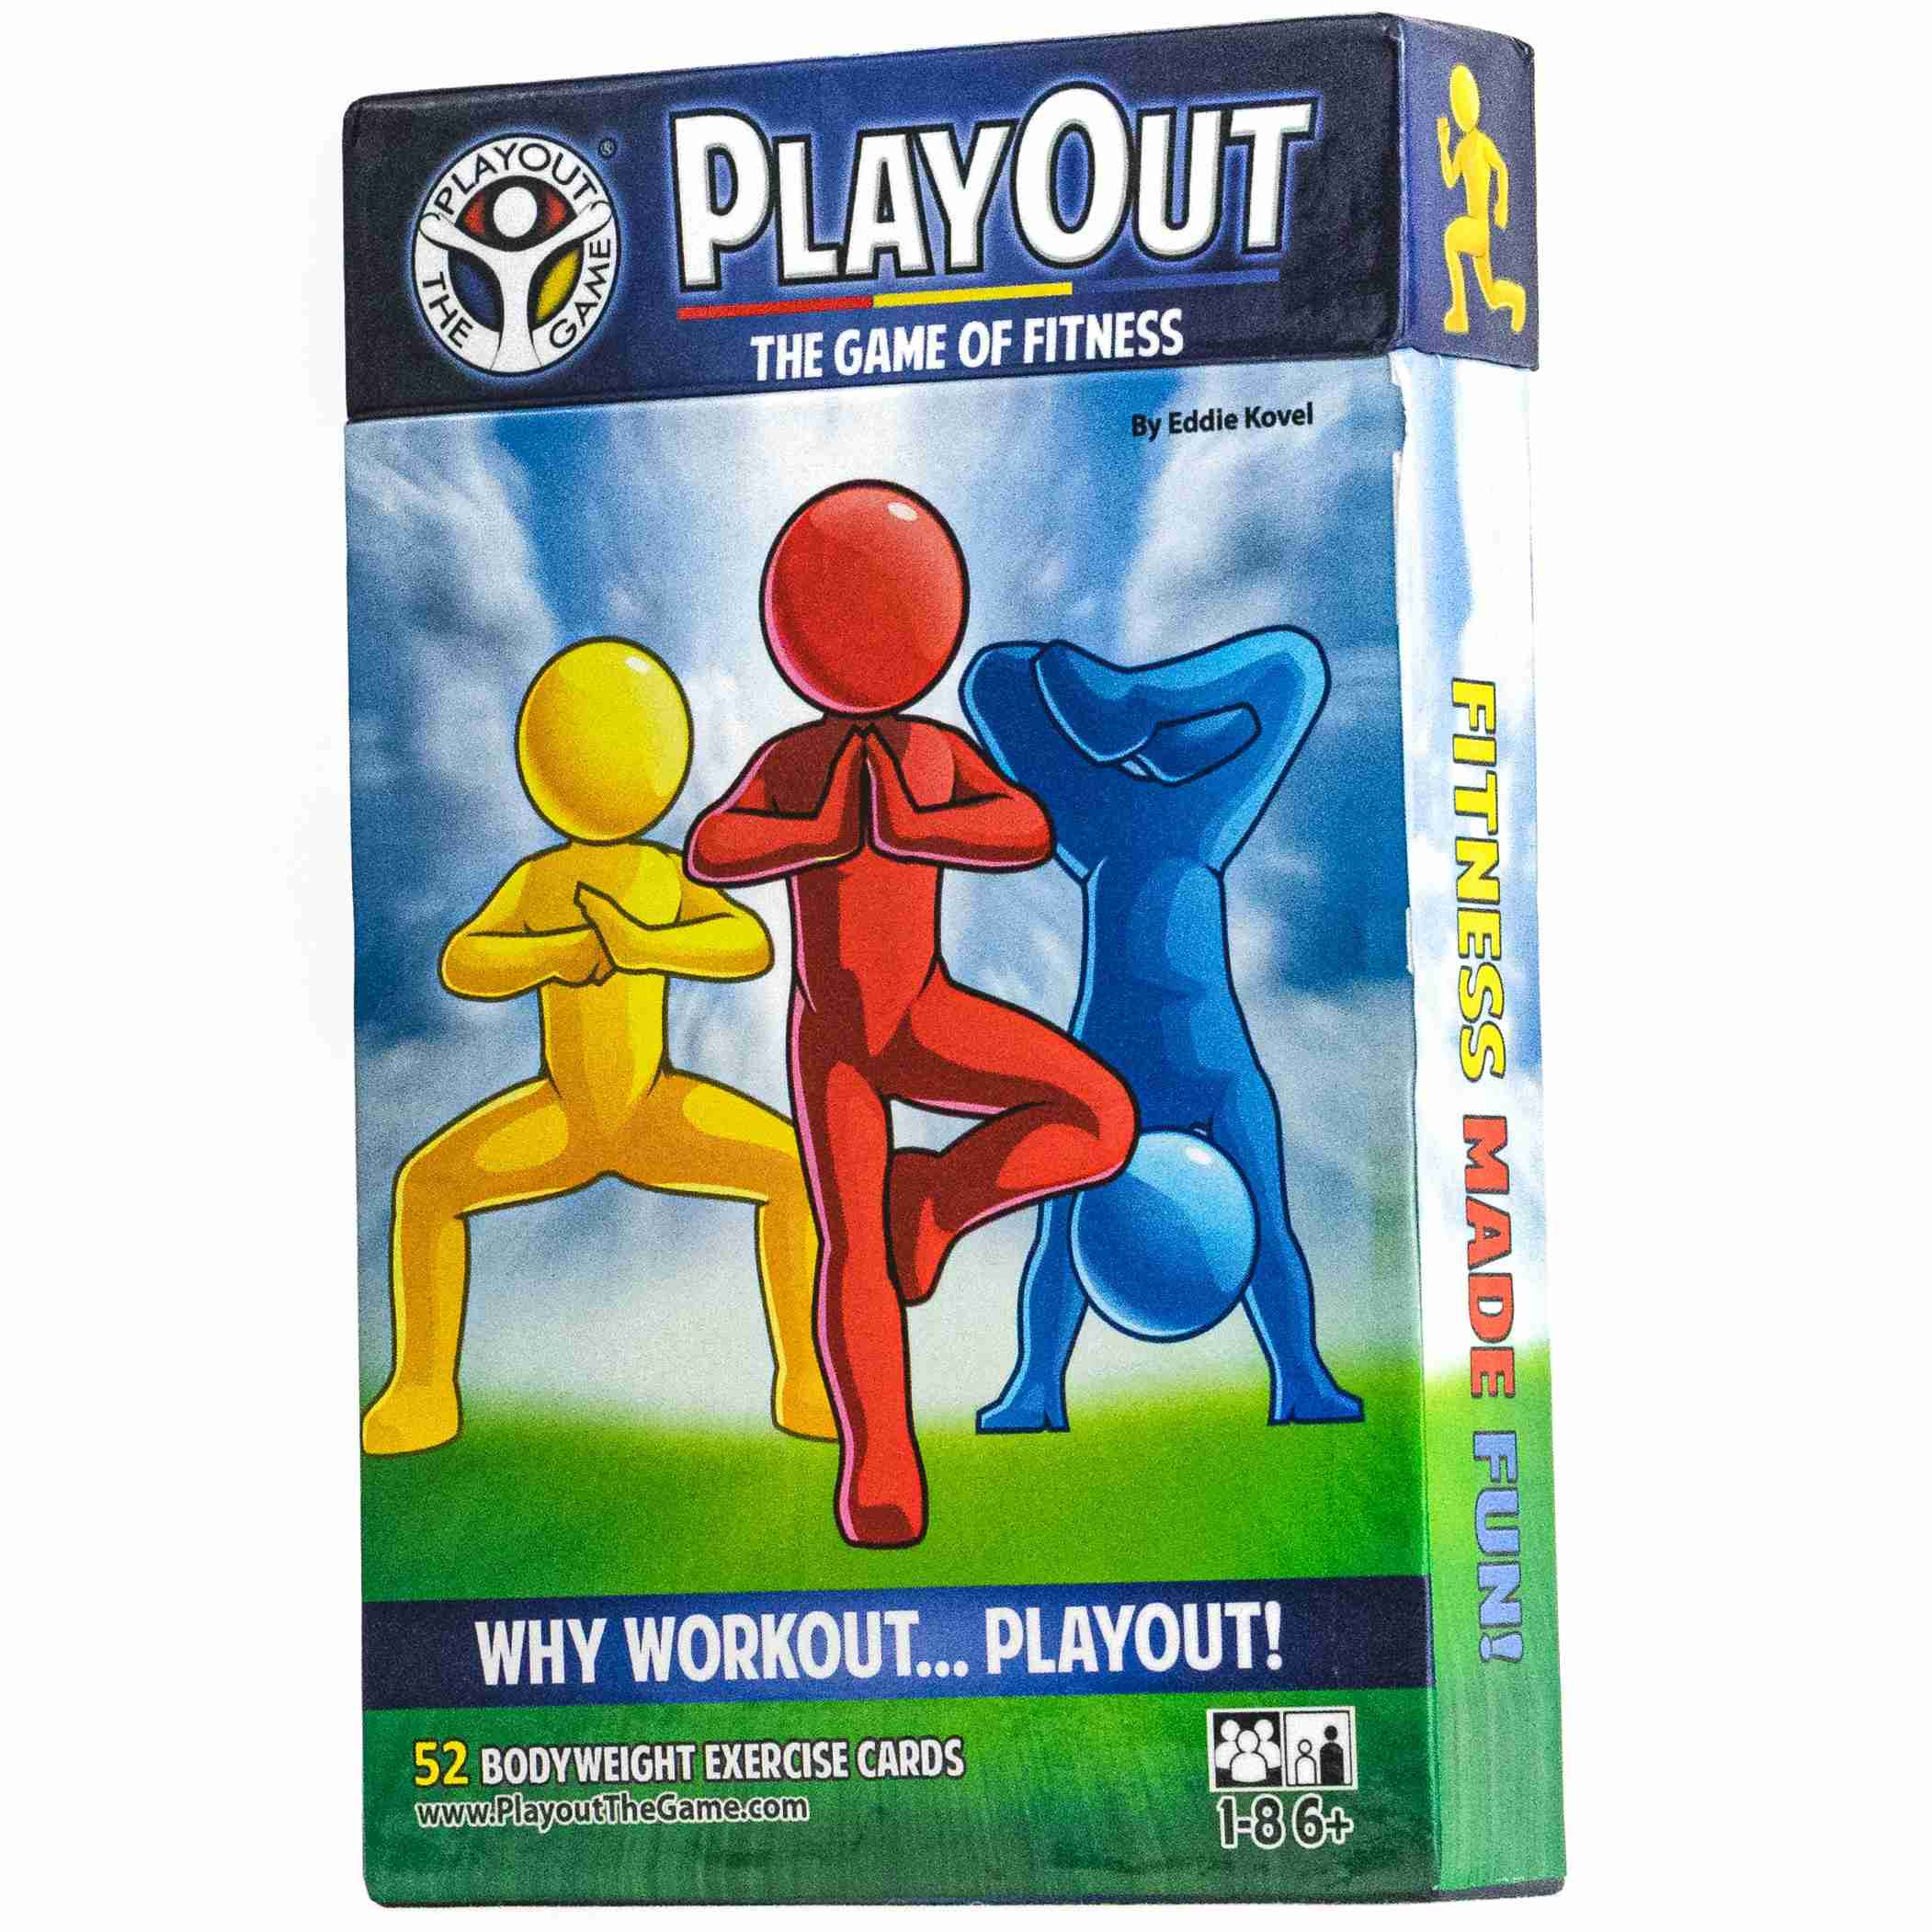 Playout Family Edition